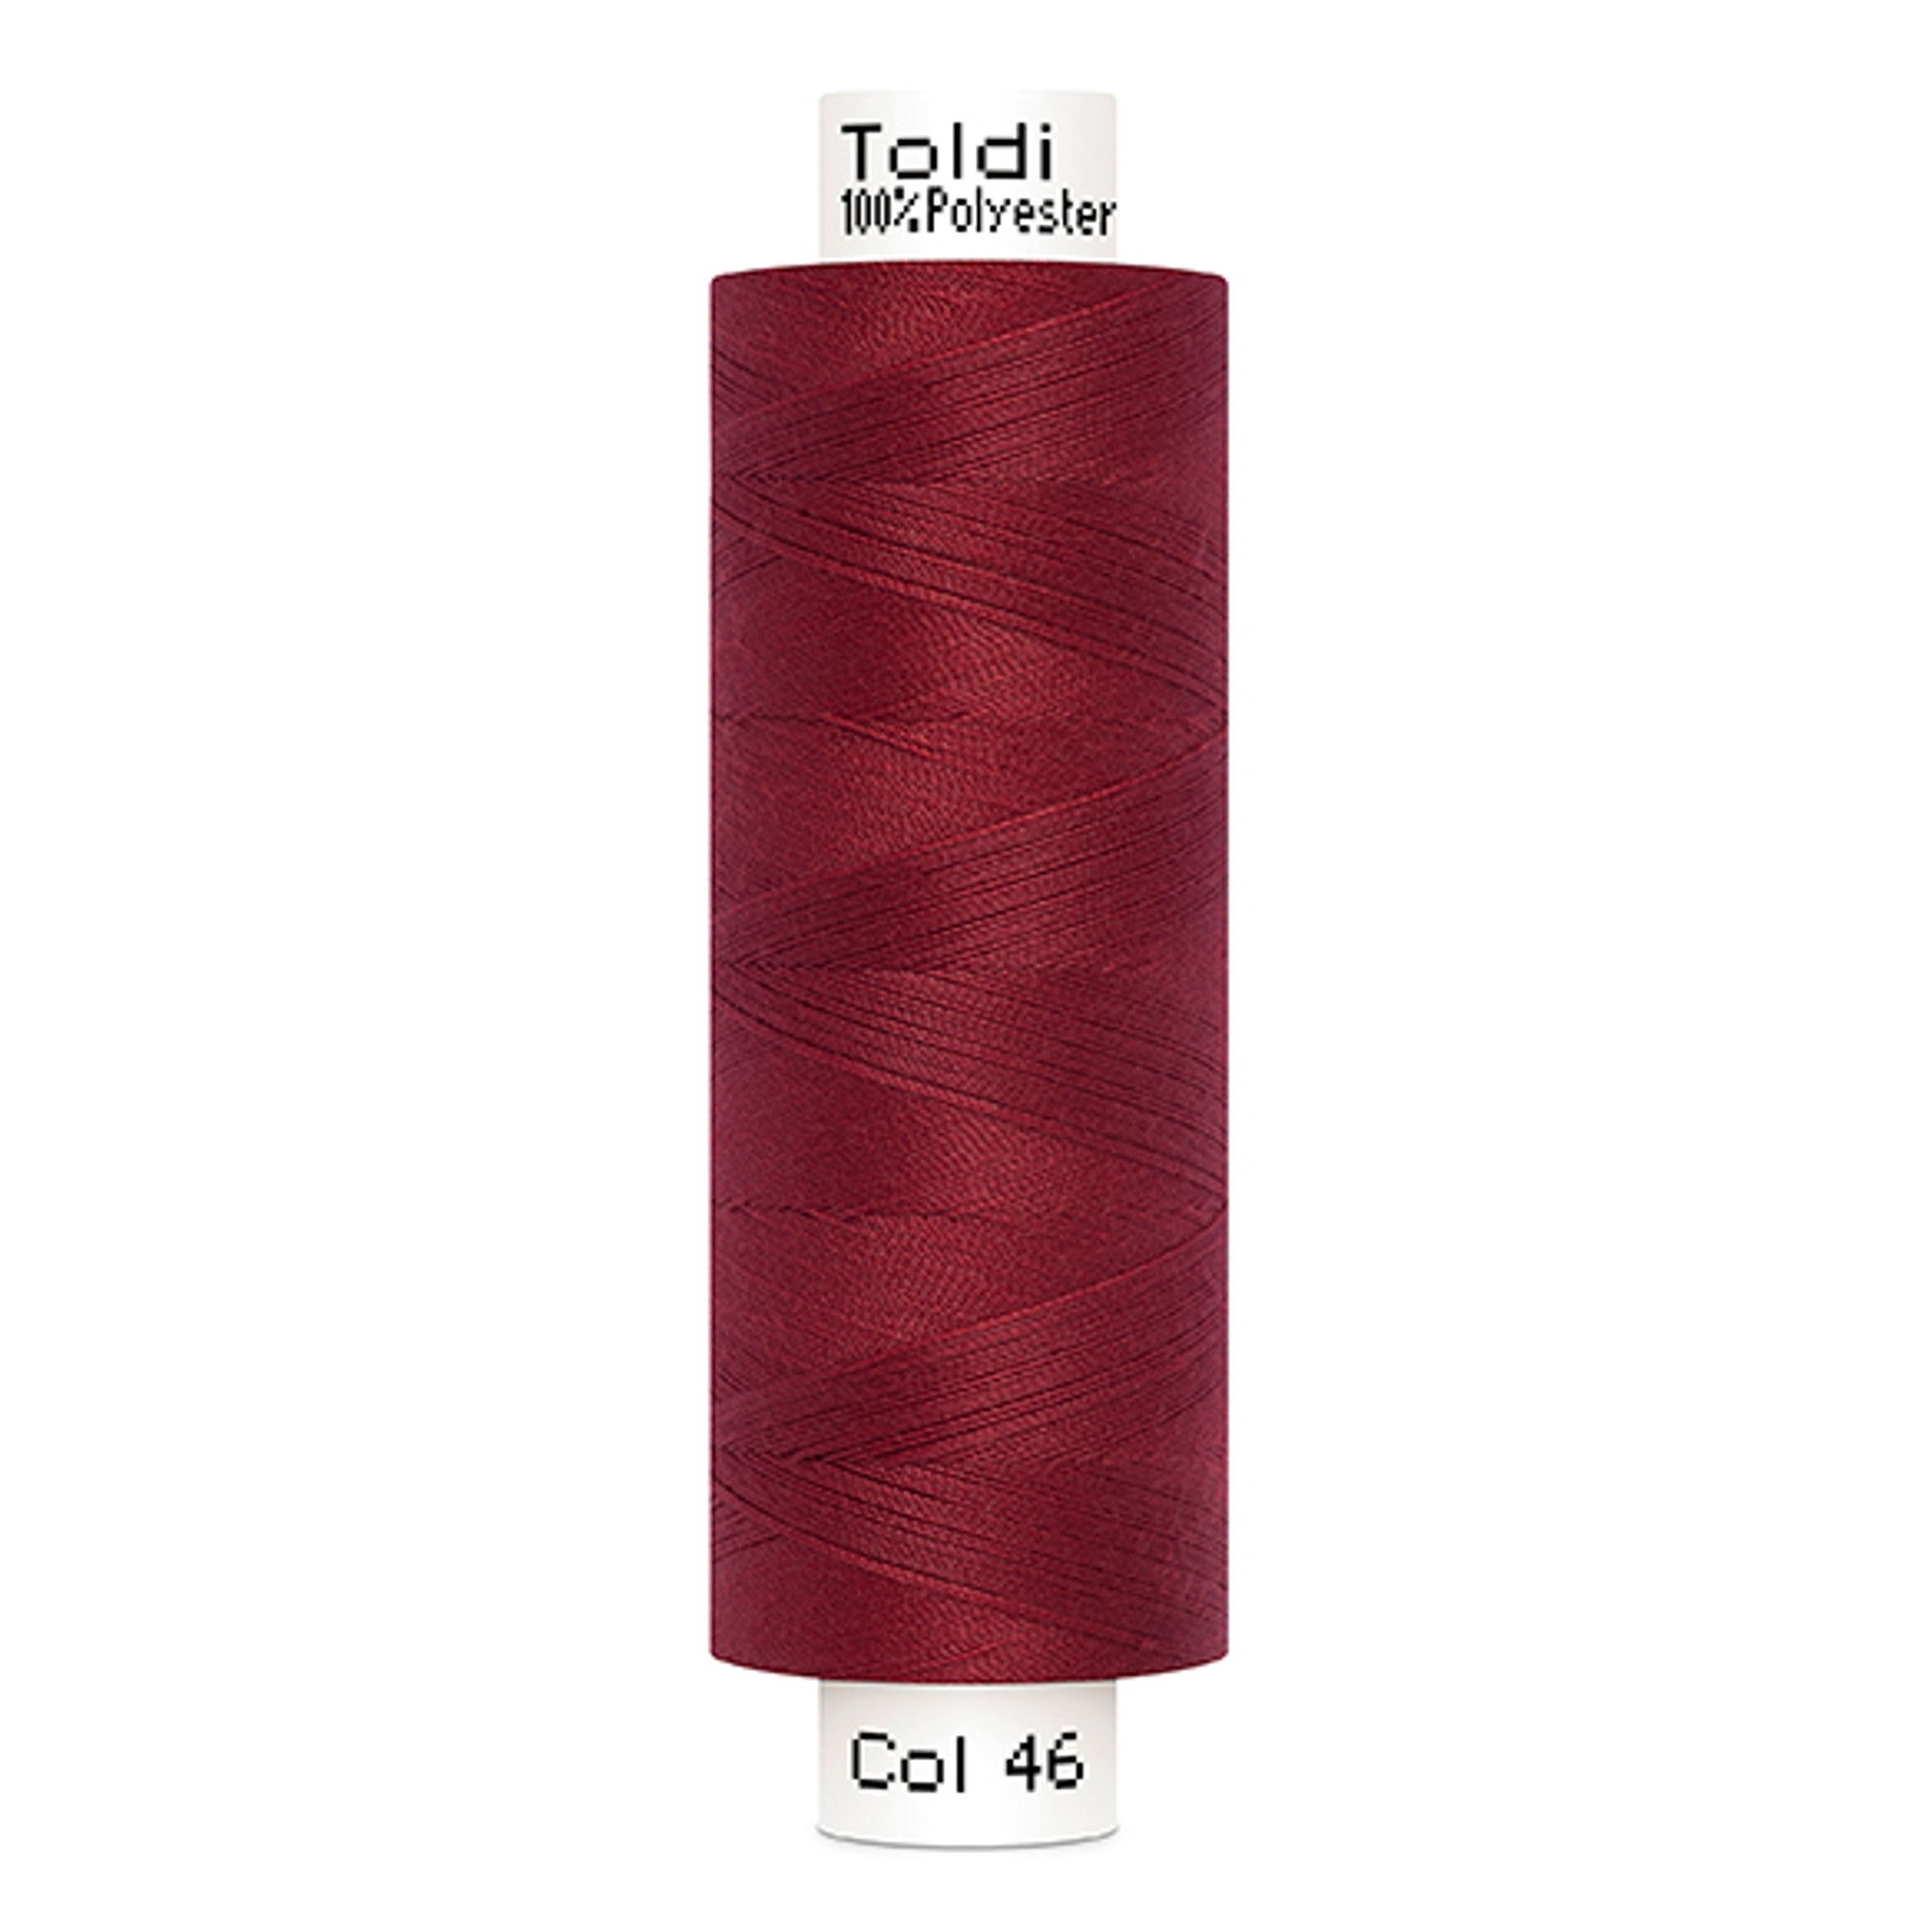 Gütermann Toldi Sewing Thread, 500 m, darkrood | 707589-46 |